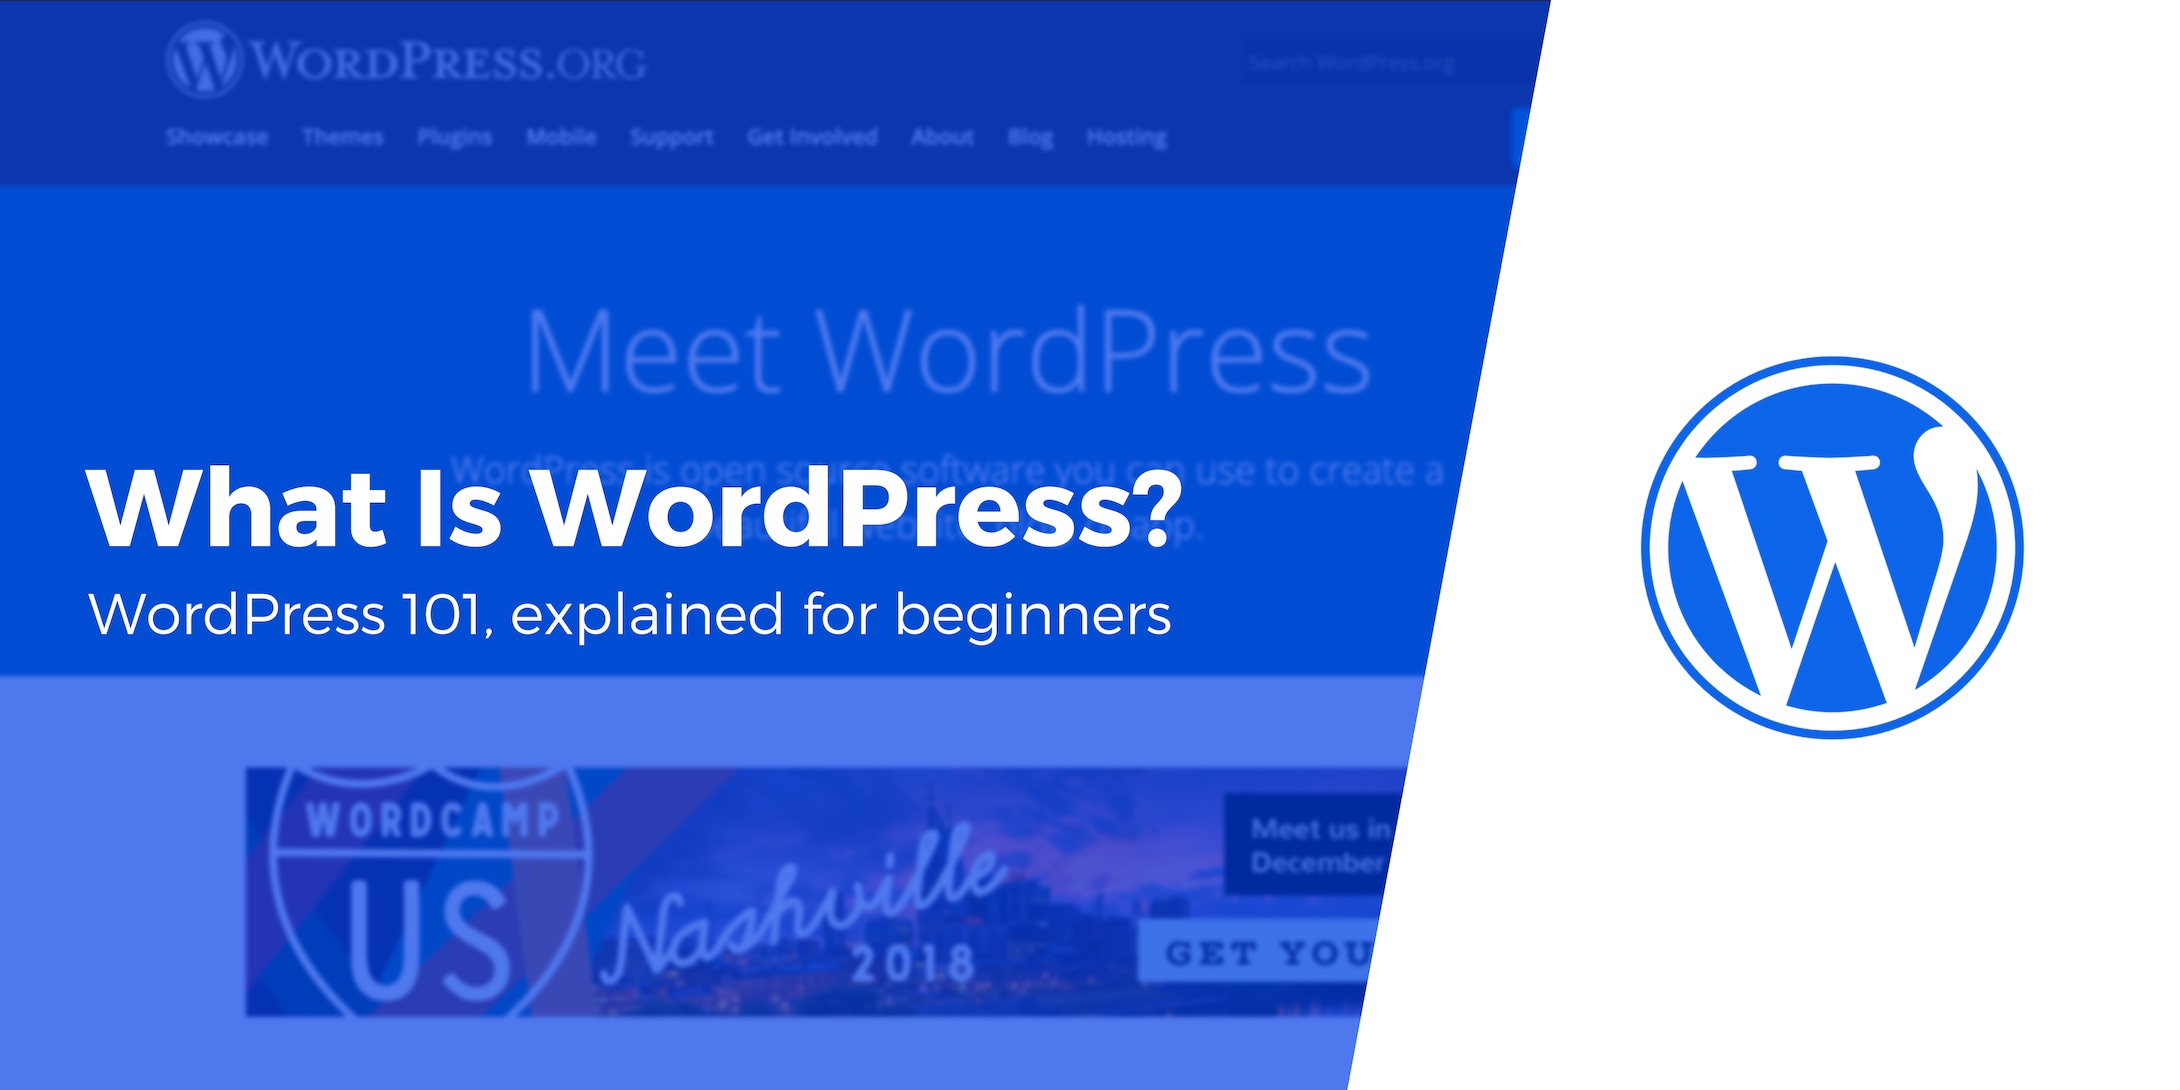 What Is WordPress? WordPress 101, Explained for Beginners